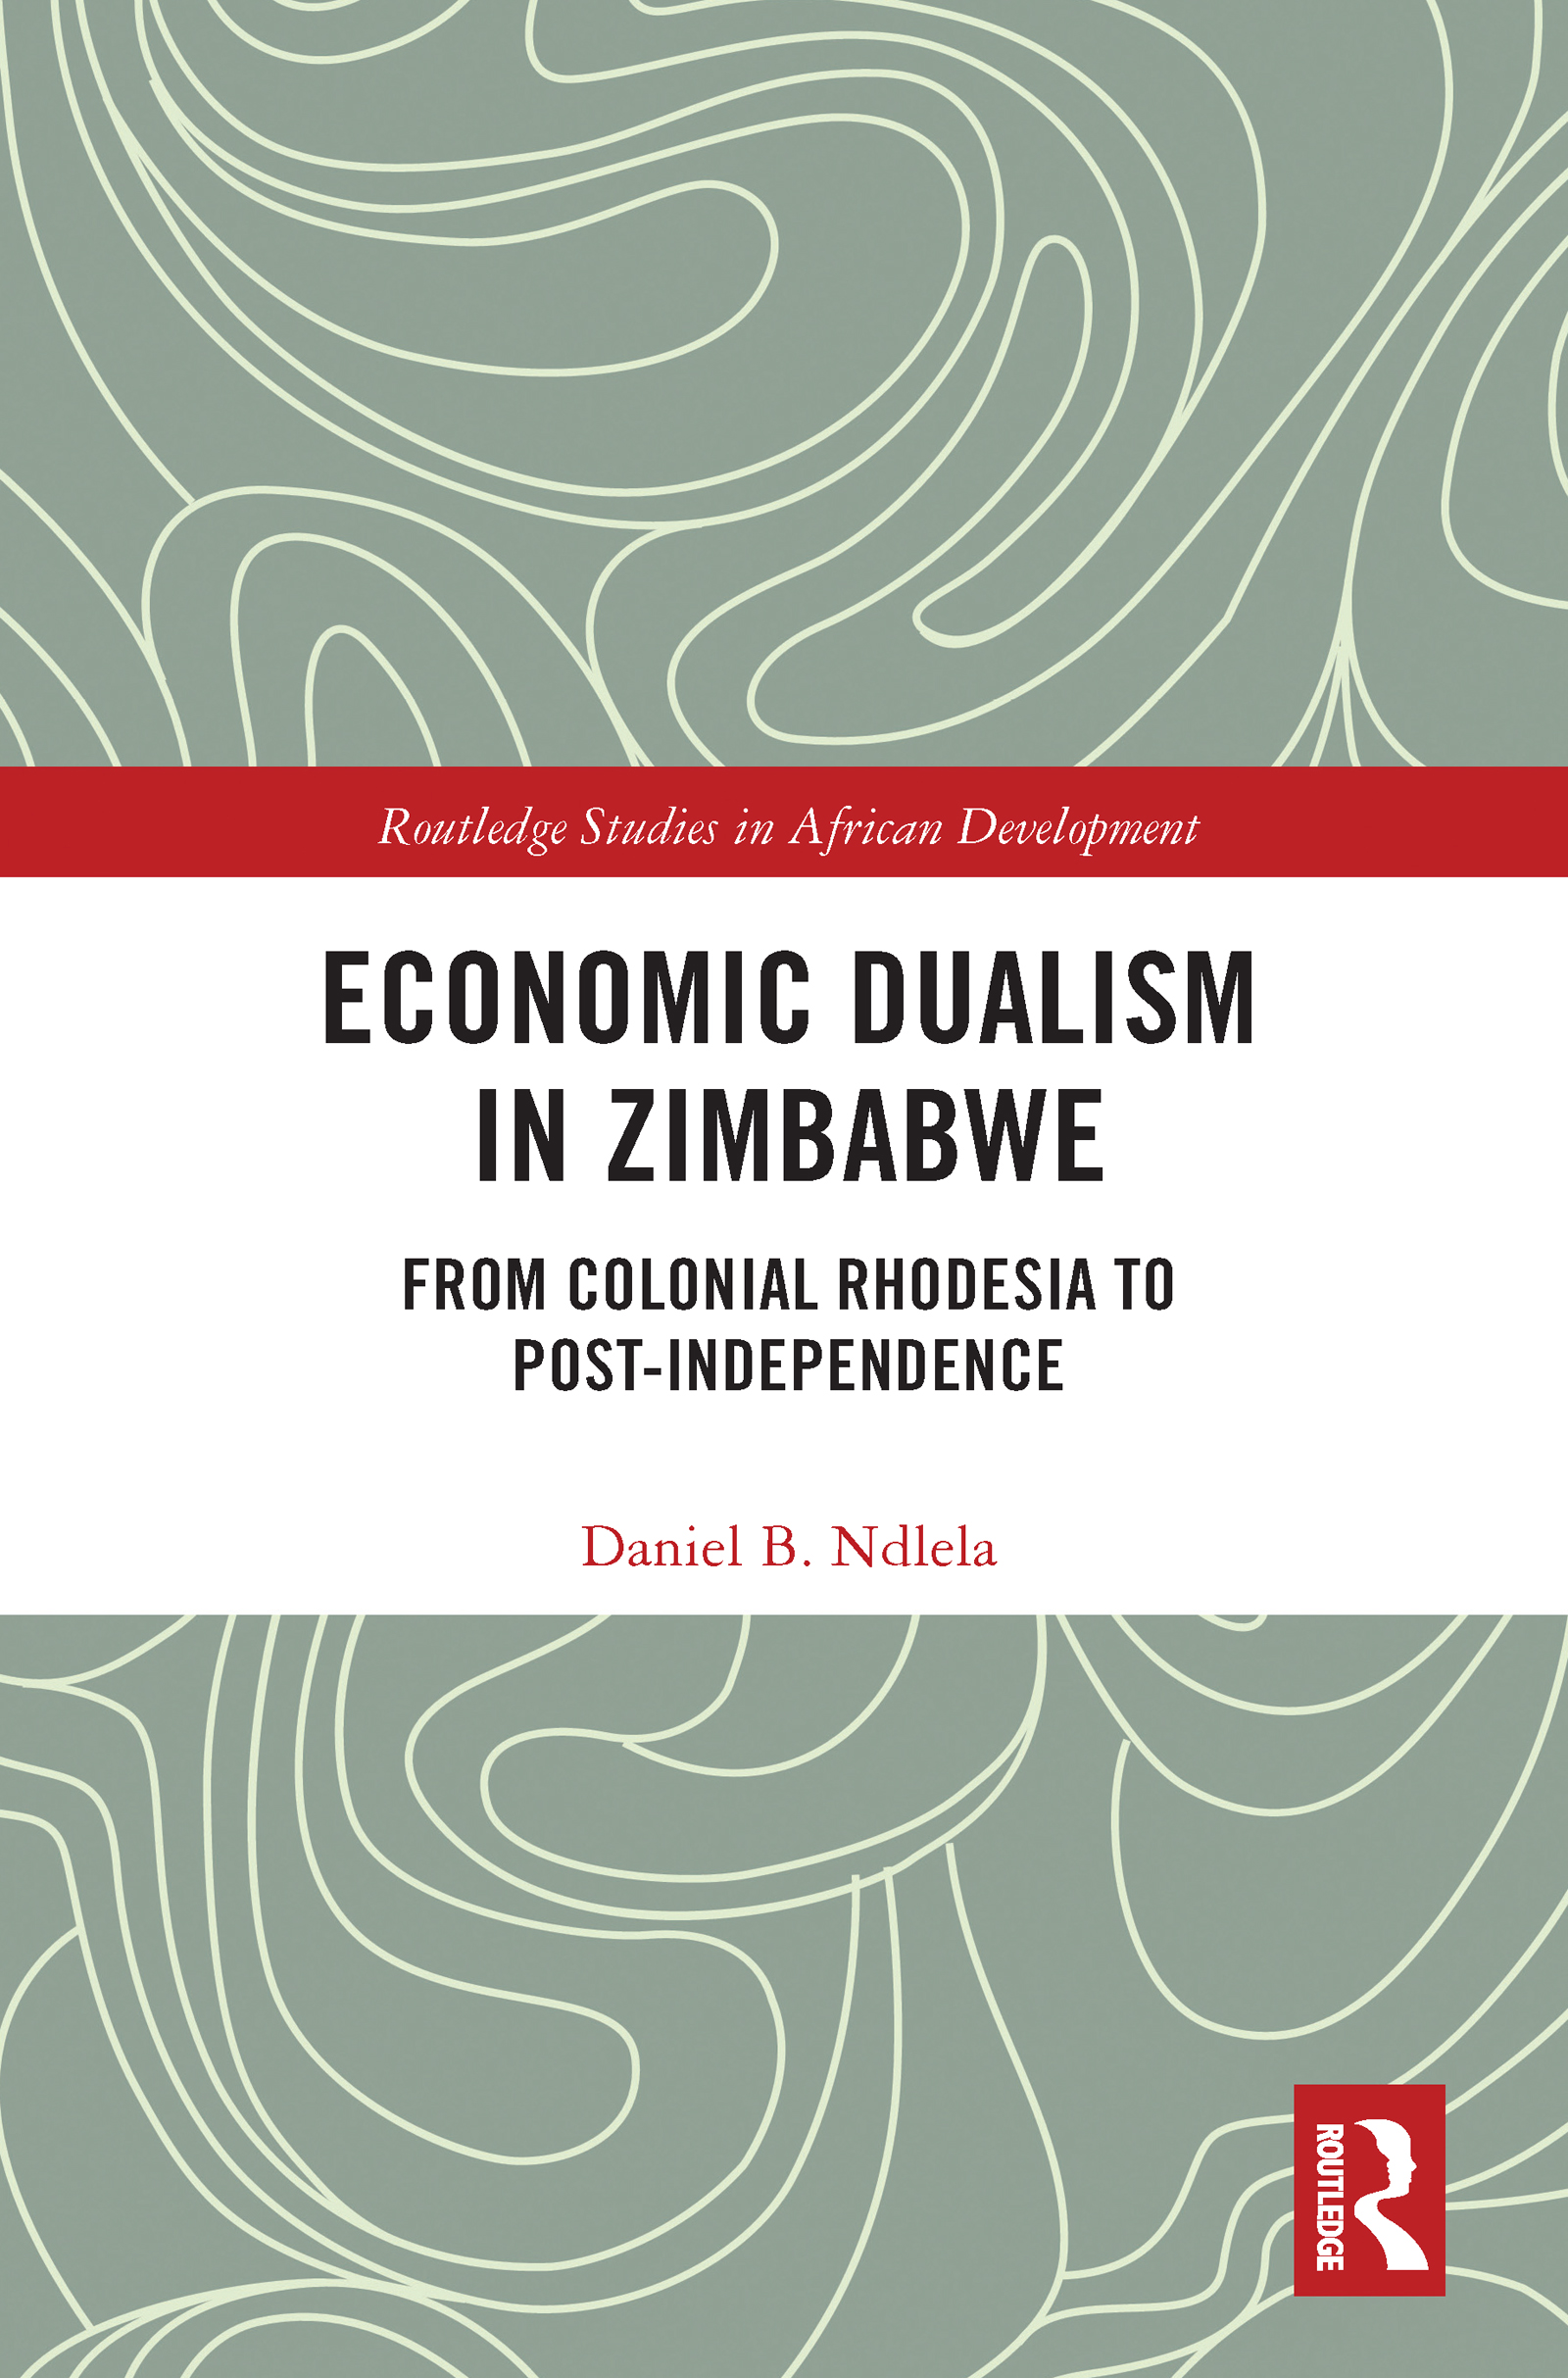 Economic Dualism in Zimbabwe